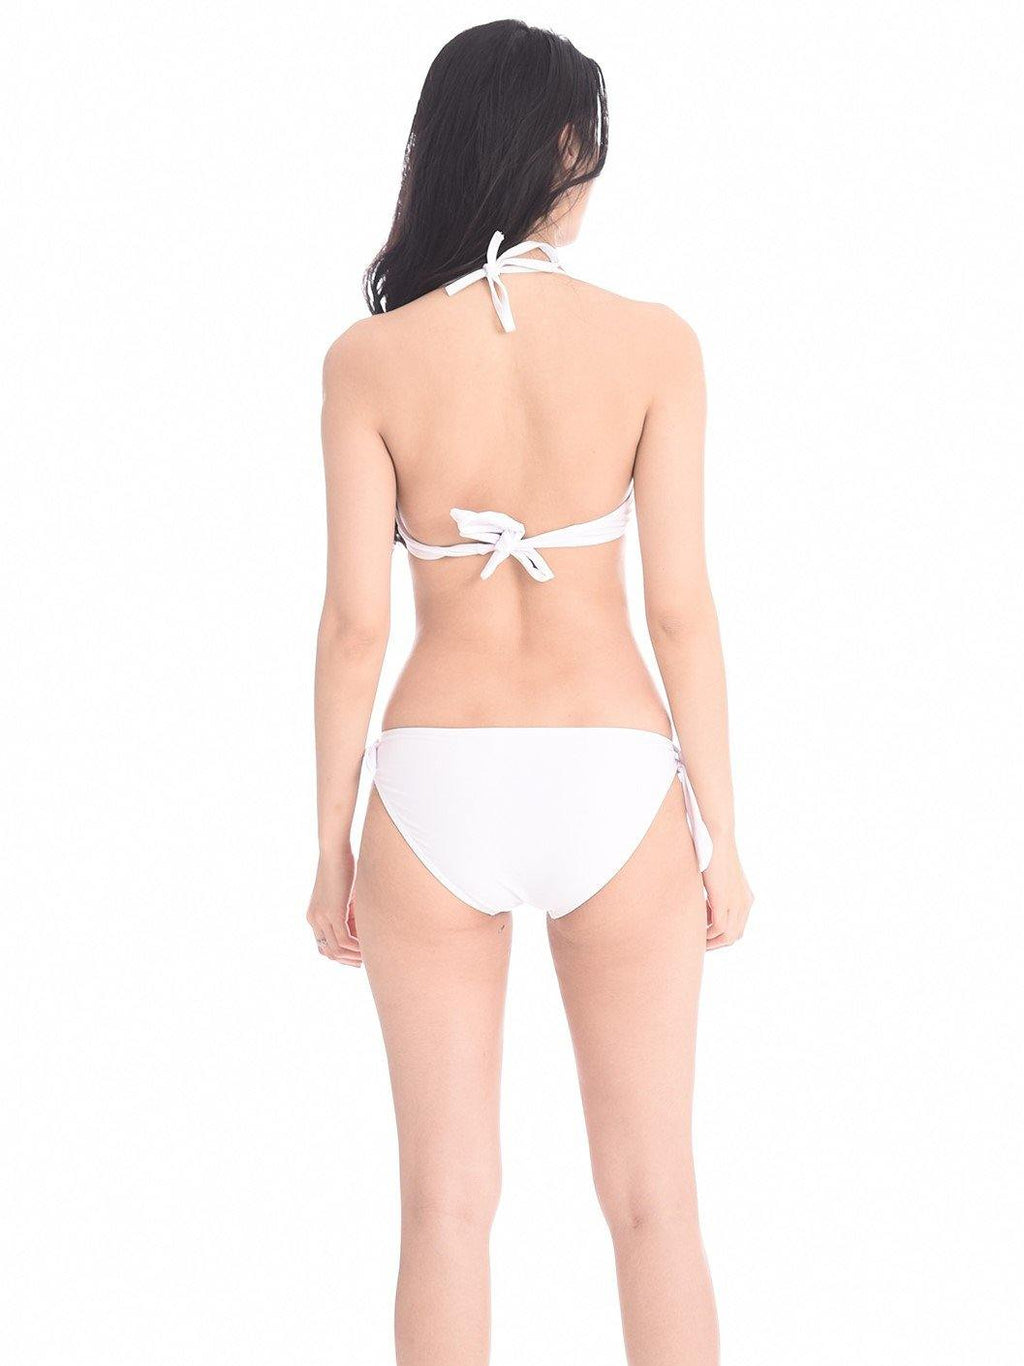 White Basic Push Up Bikini - pink-n-proper